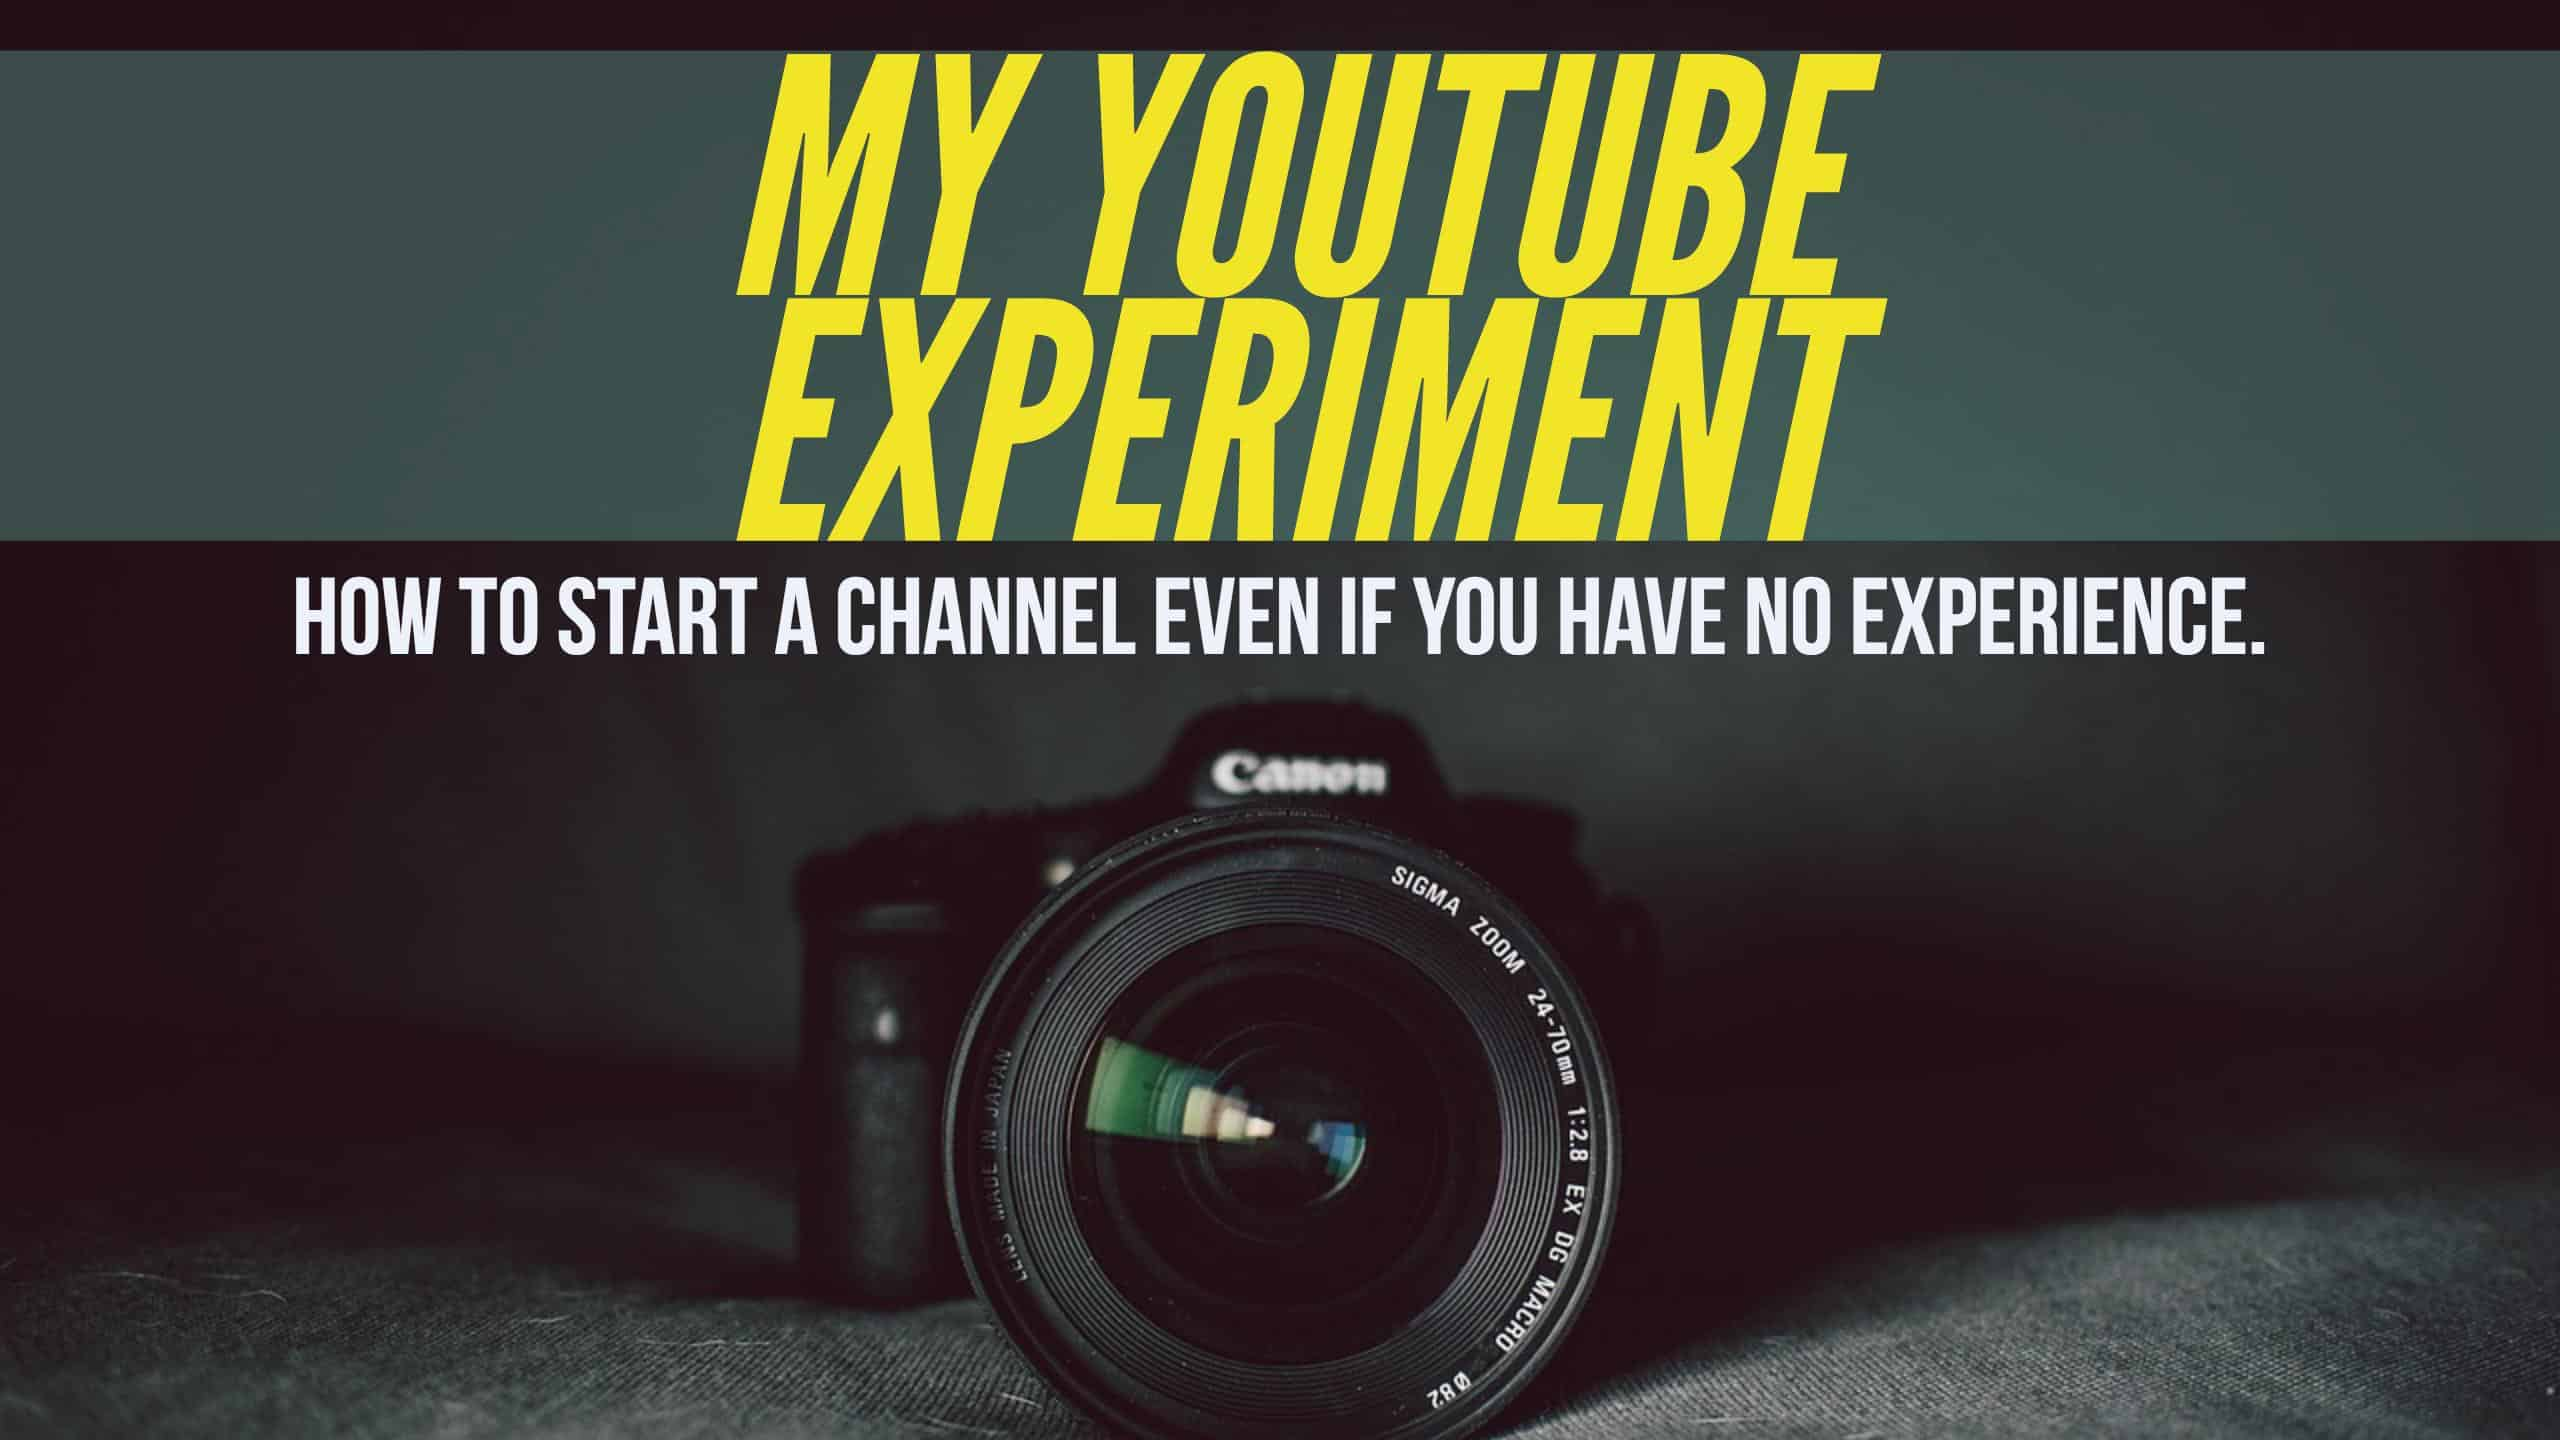 How to launch a YouTube channel even if you have no experience — Follow along with the experiment!